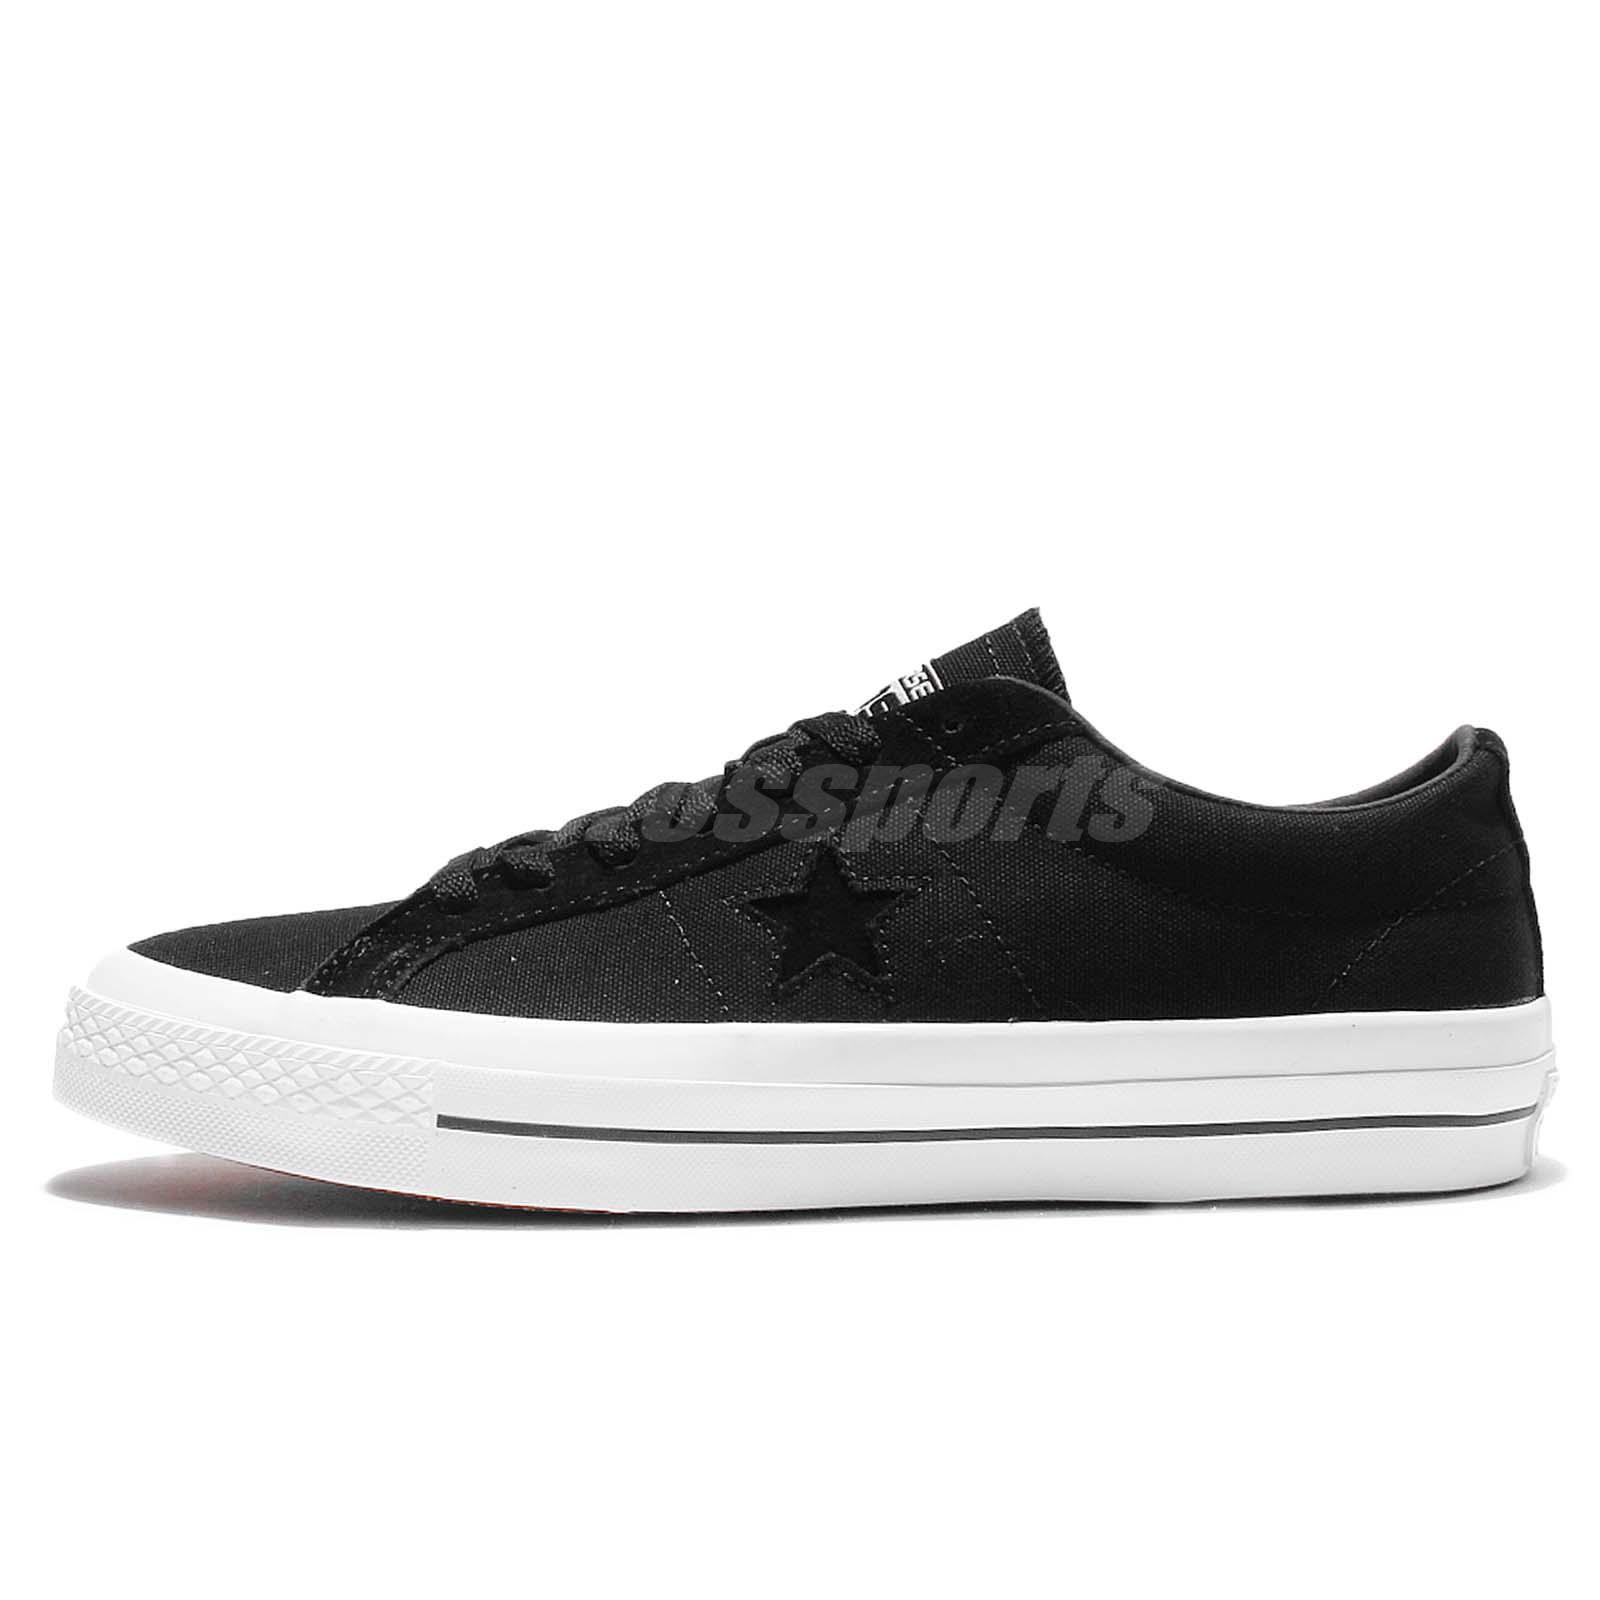 converse one star ox black